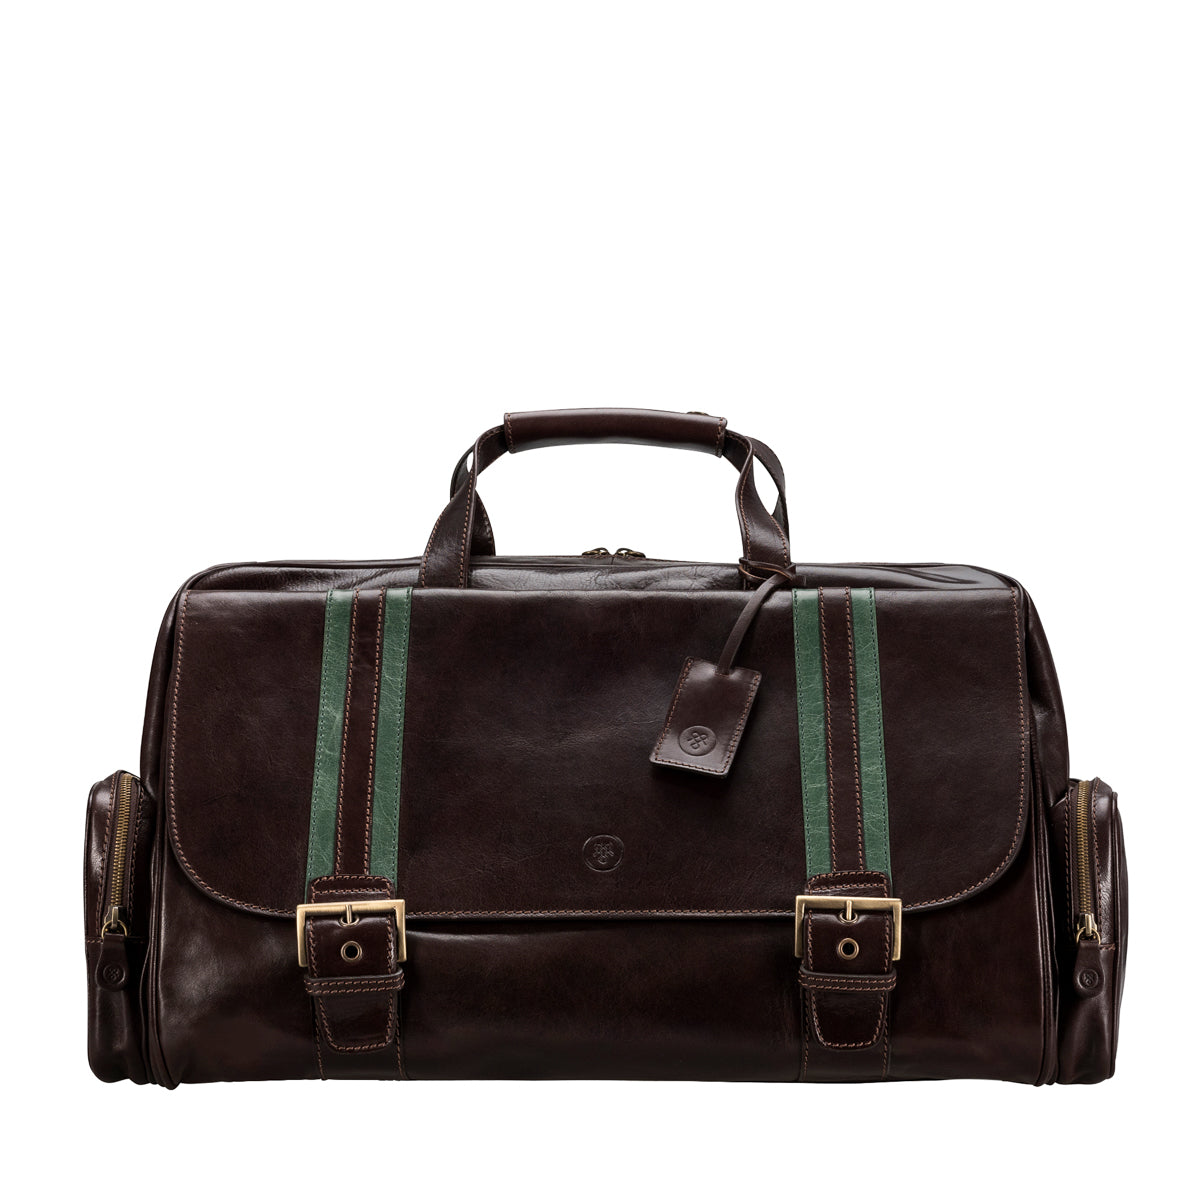 Image 1 of the 'Dino' Dark Chocolate Veg-Tanned Leather Holdall